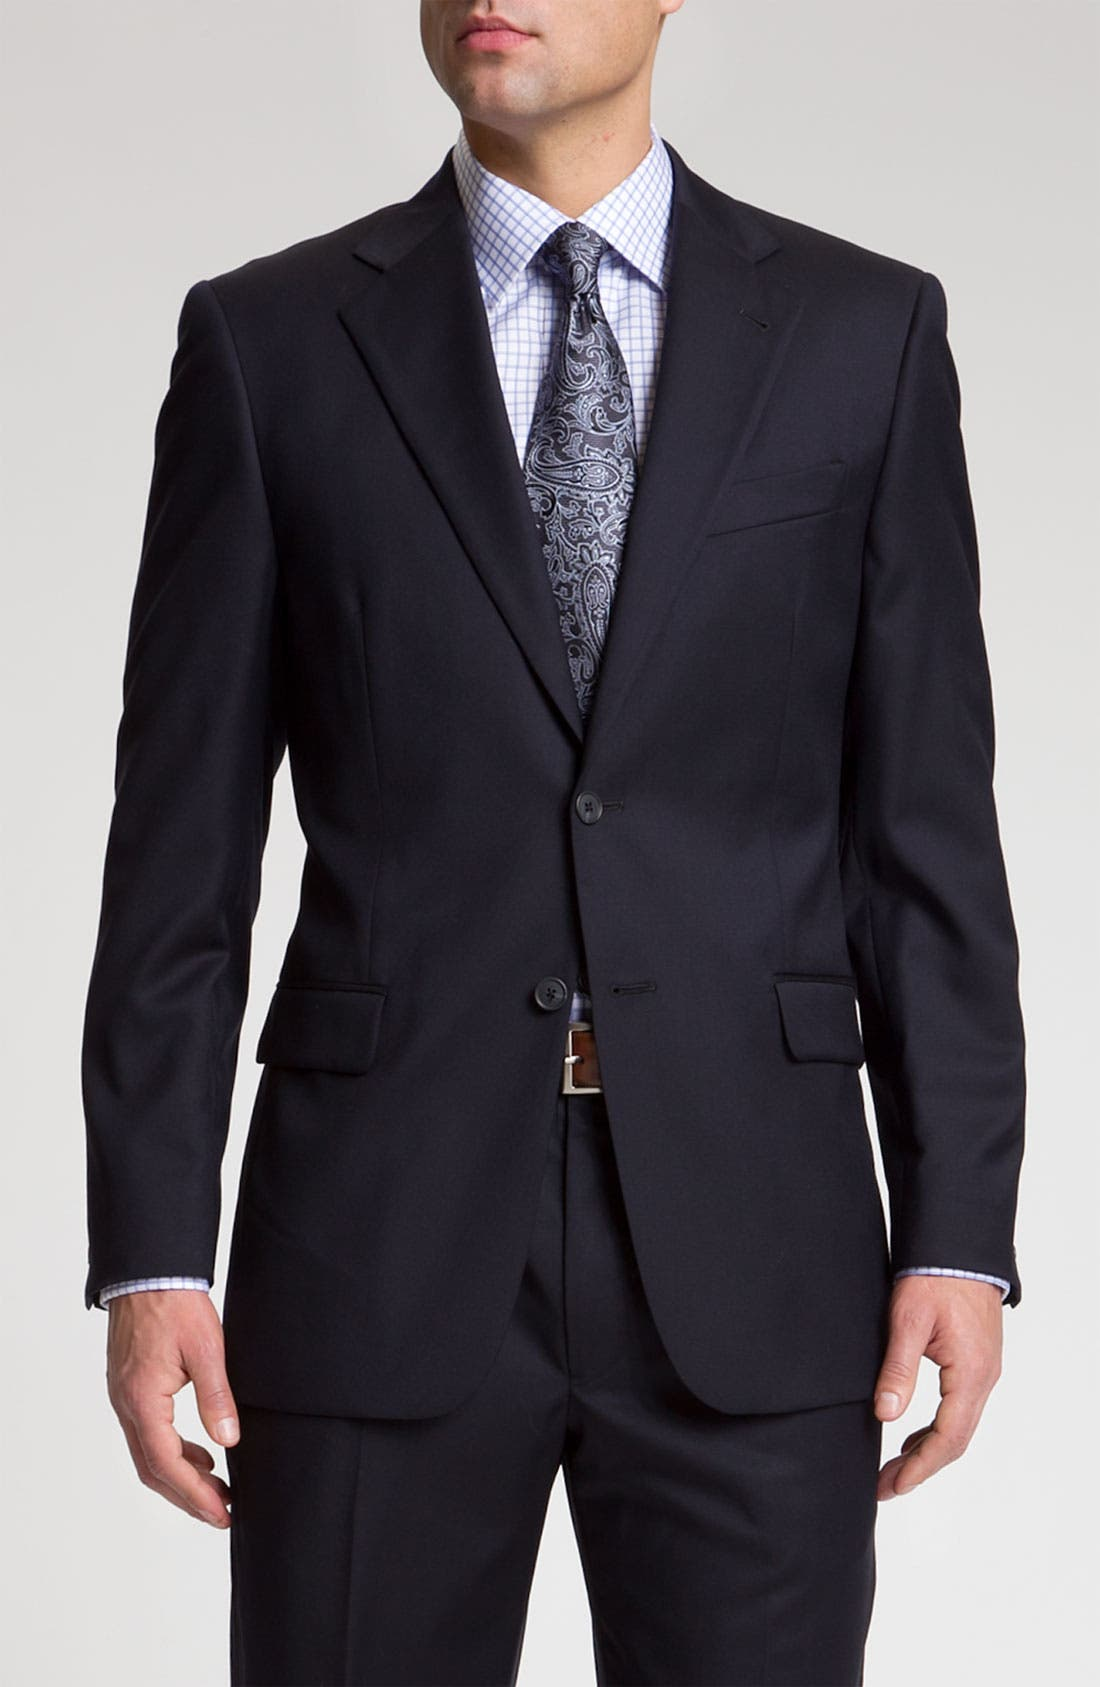 Main Image - Joseph Abboud 'Signature Silver' Navy Wool Suit